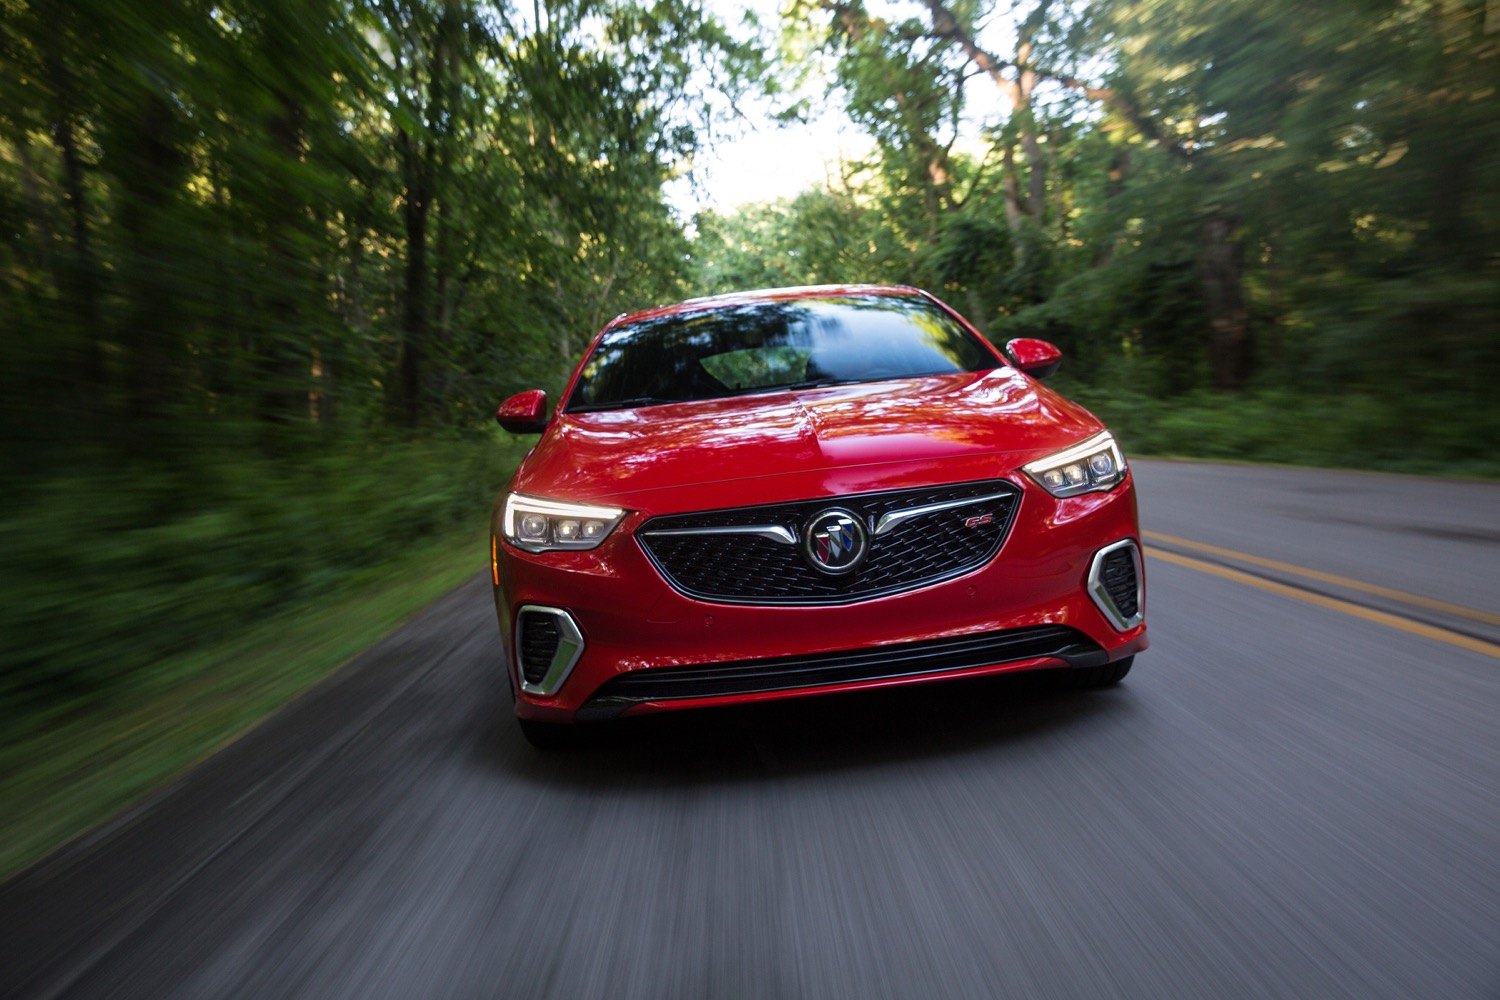 2018 Buick Regal Gs Revealed With V6 Engine | Gm Authority New 2022 Buick Regal Gs Lease, Engine, Owners Manual